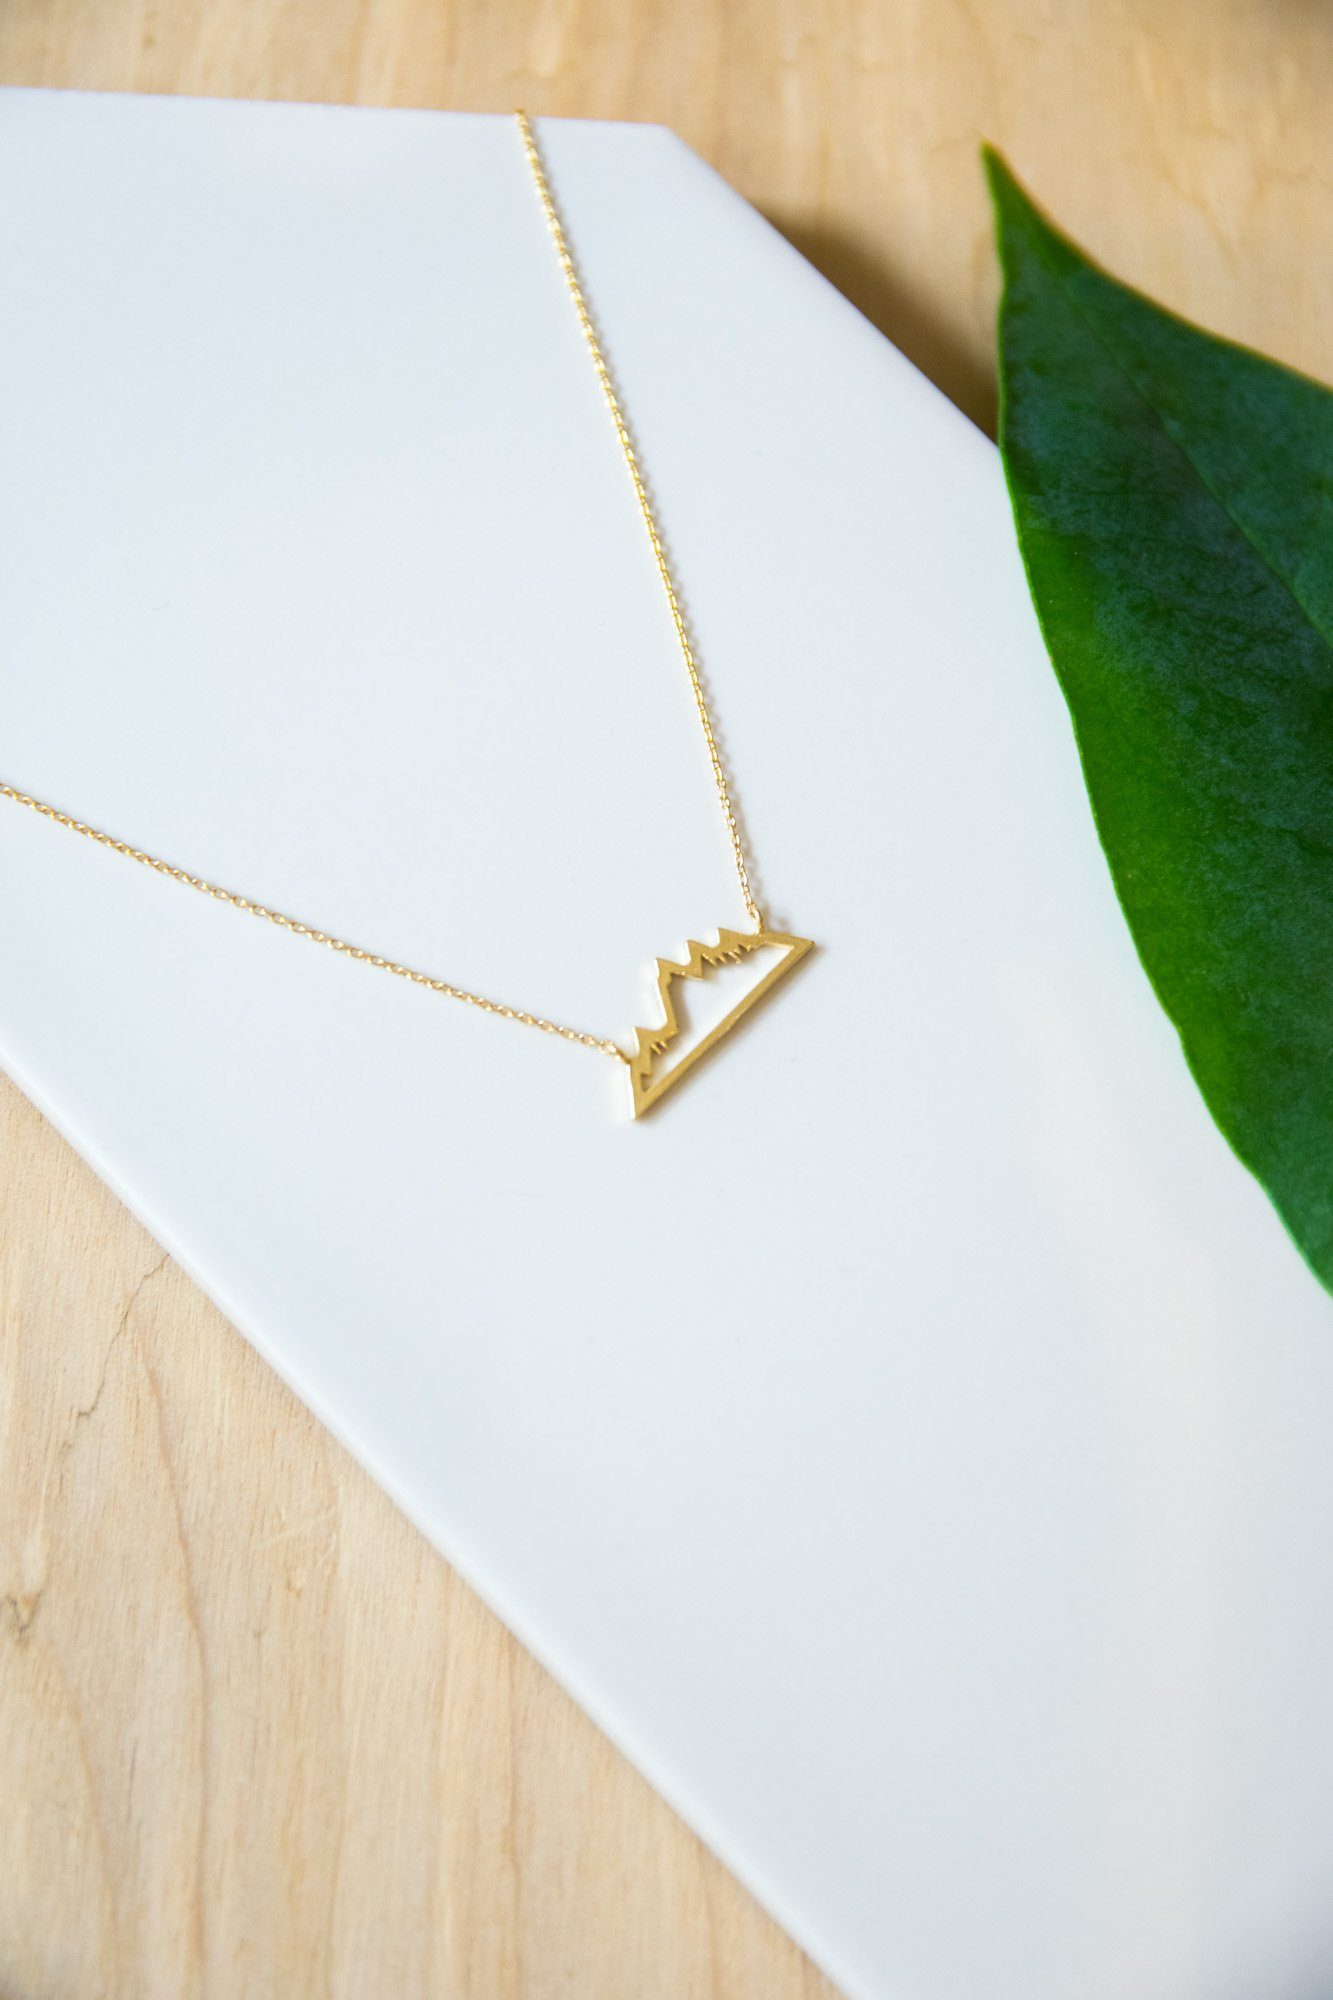 Peak Performance Gold Necklace